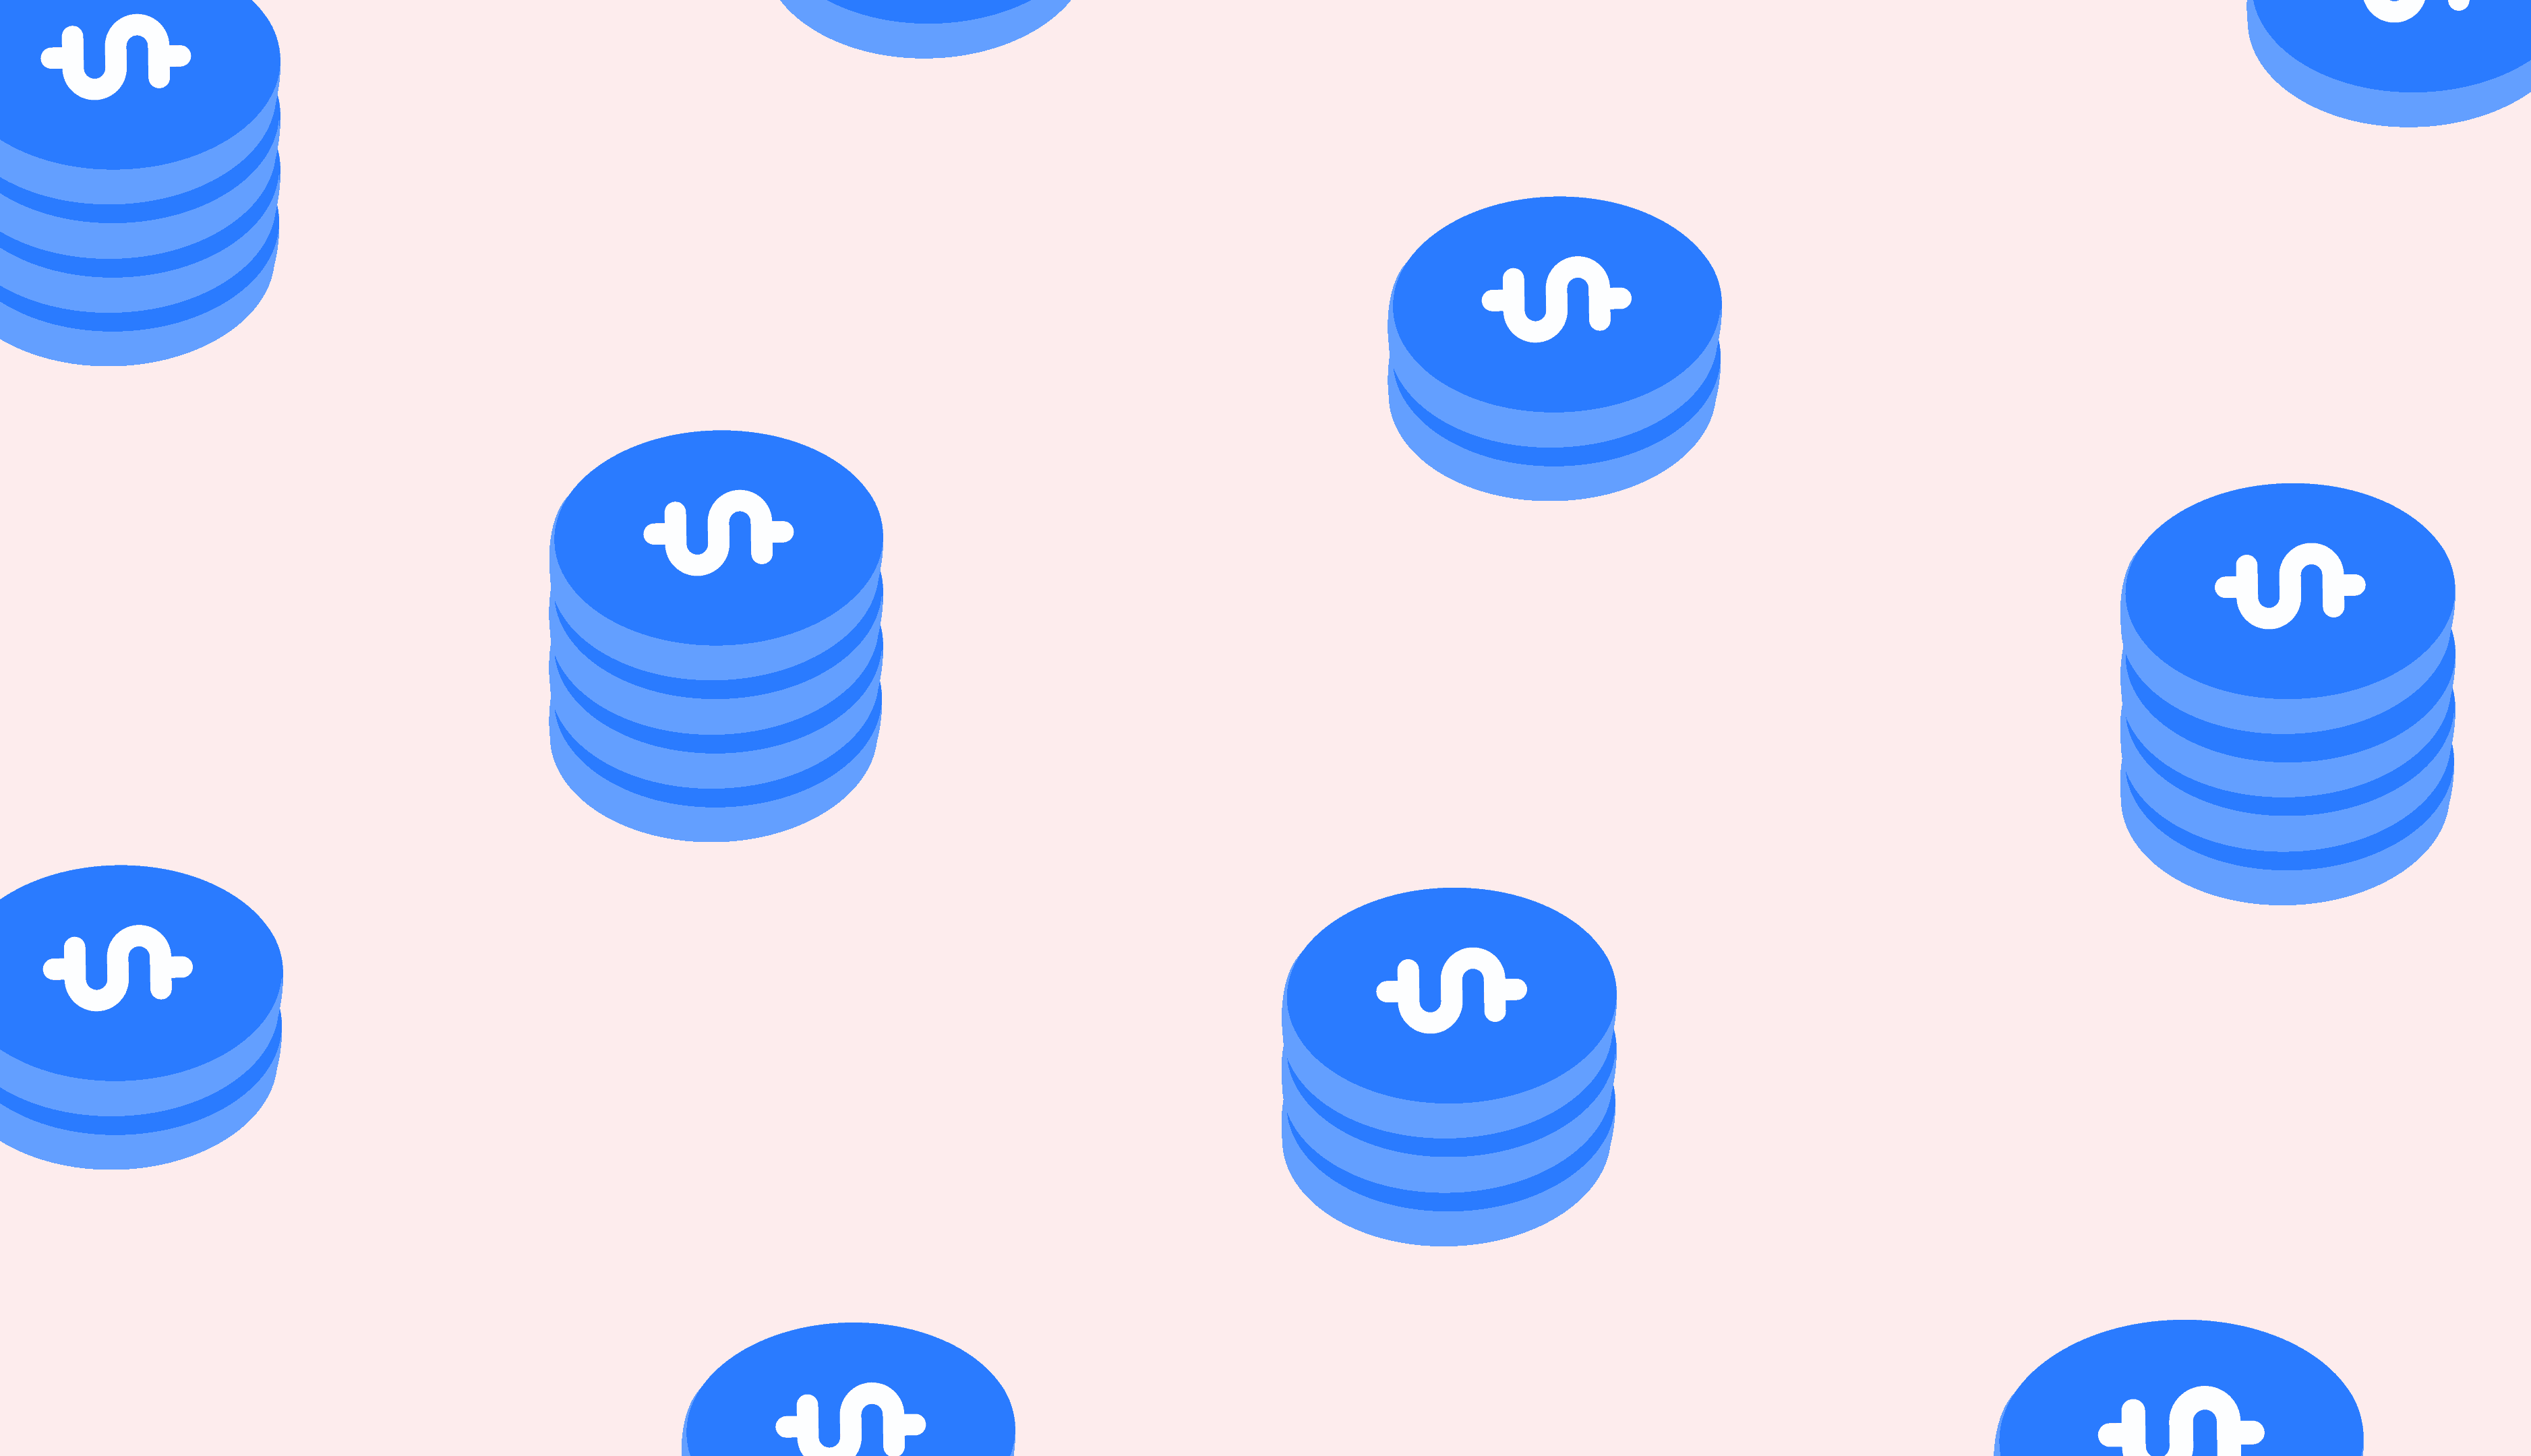 coins on pink background